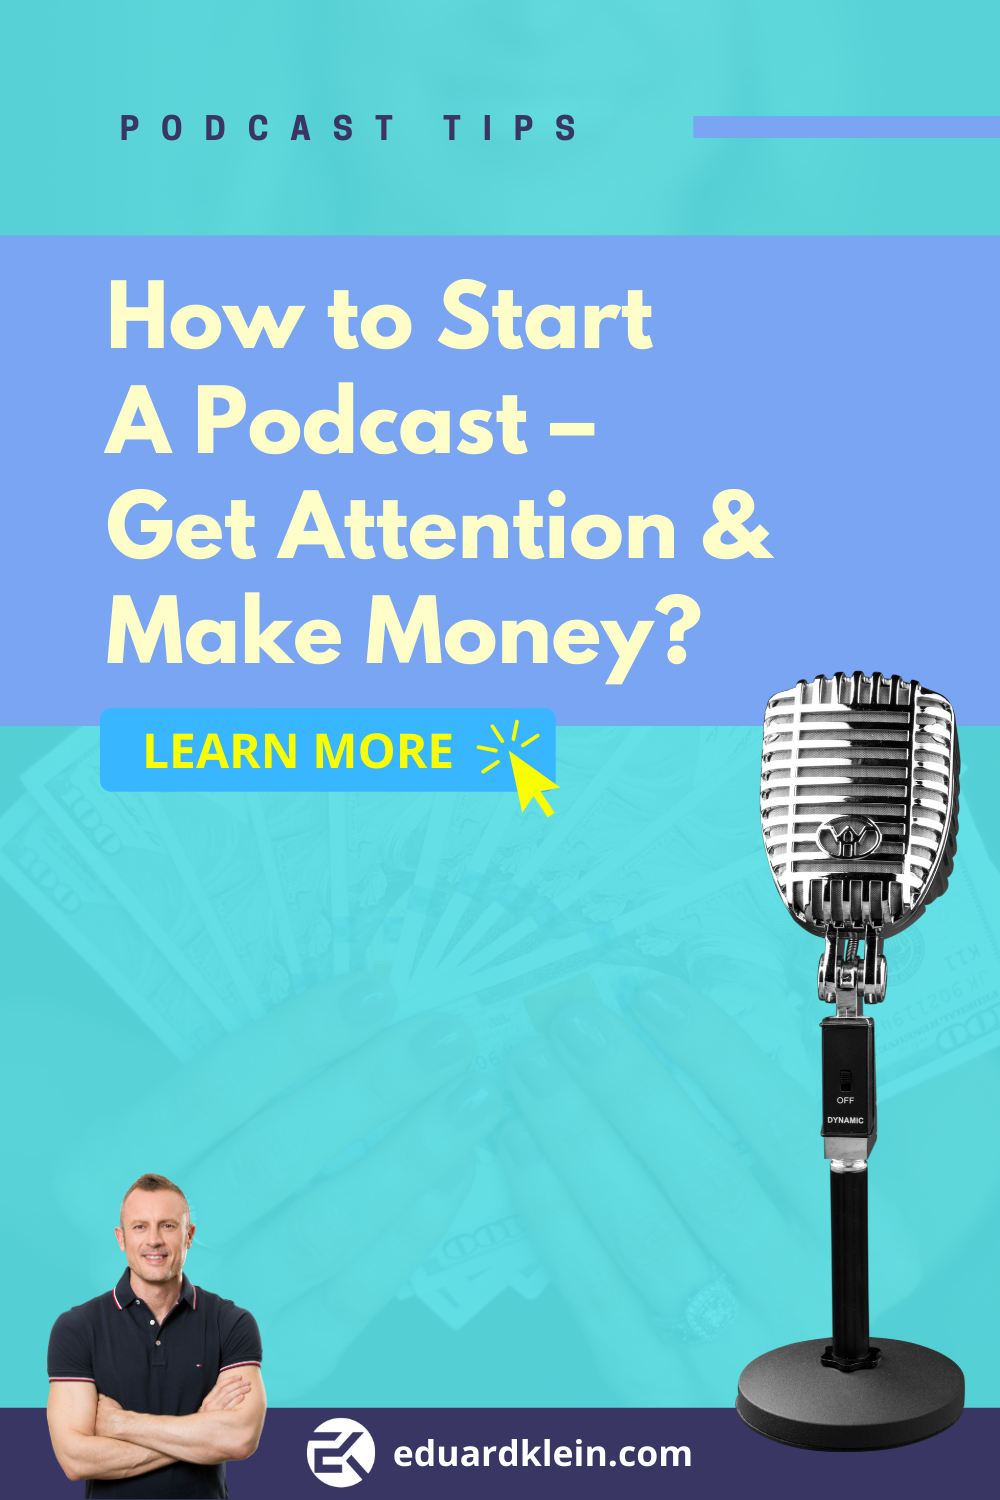 How To Start A Podcast Get Attention Make Money Podcasts Tips How To Podcast Starting A Podcast Podcasts Podcast Topics